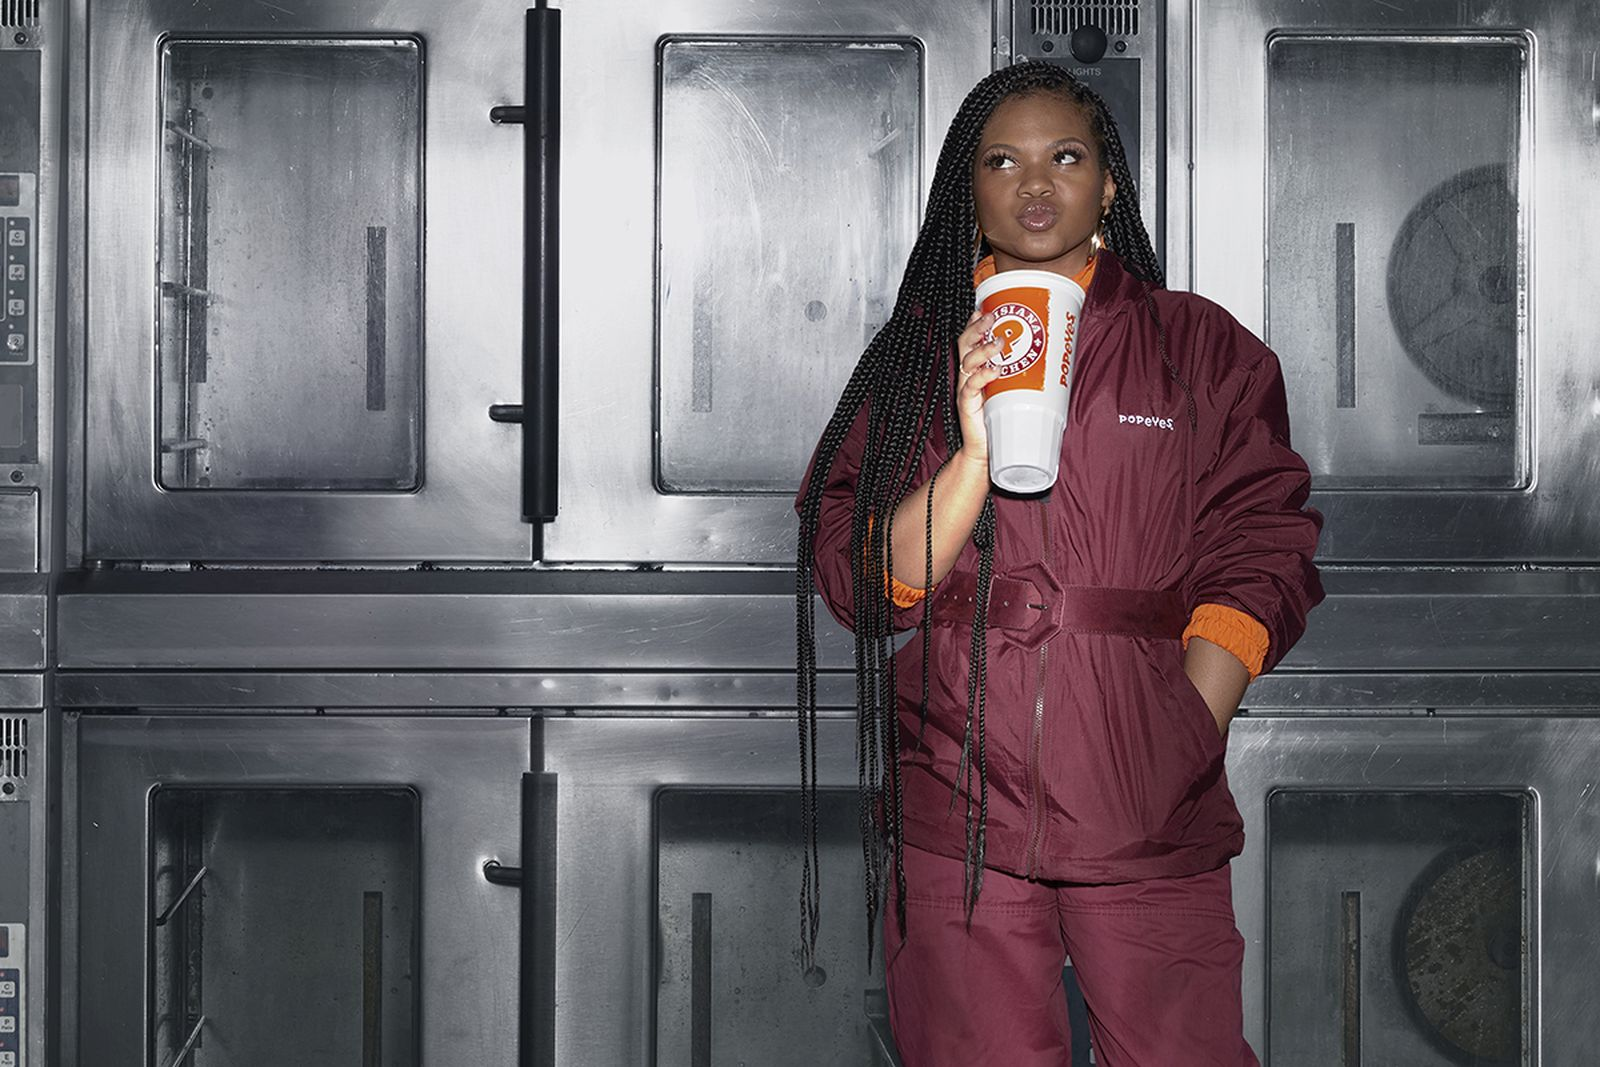 Popeyes Uniform